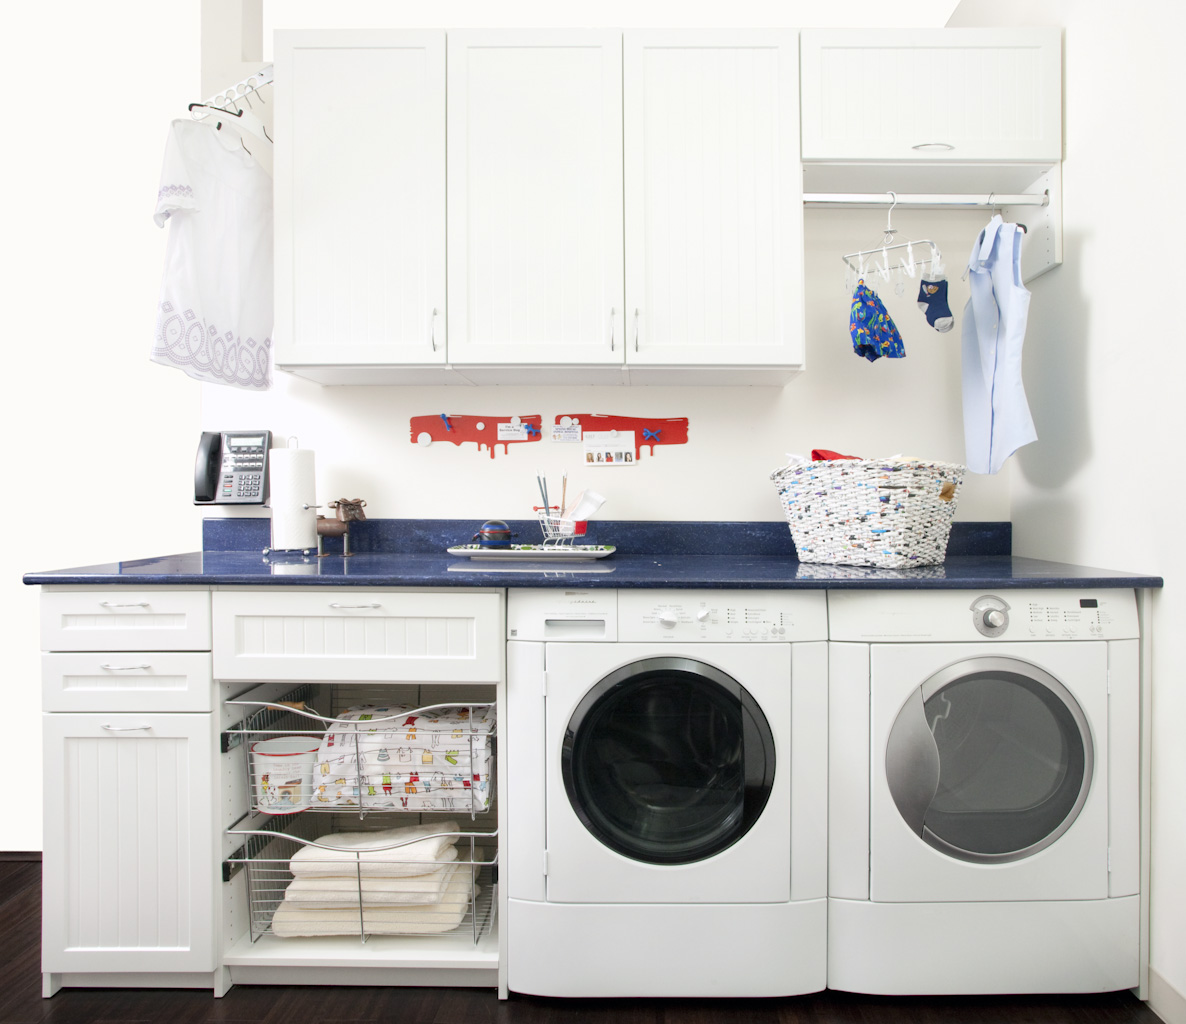 What You Should Store in Your Laundry Room